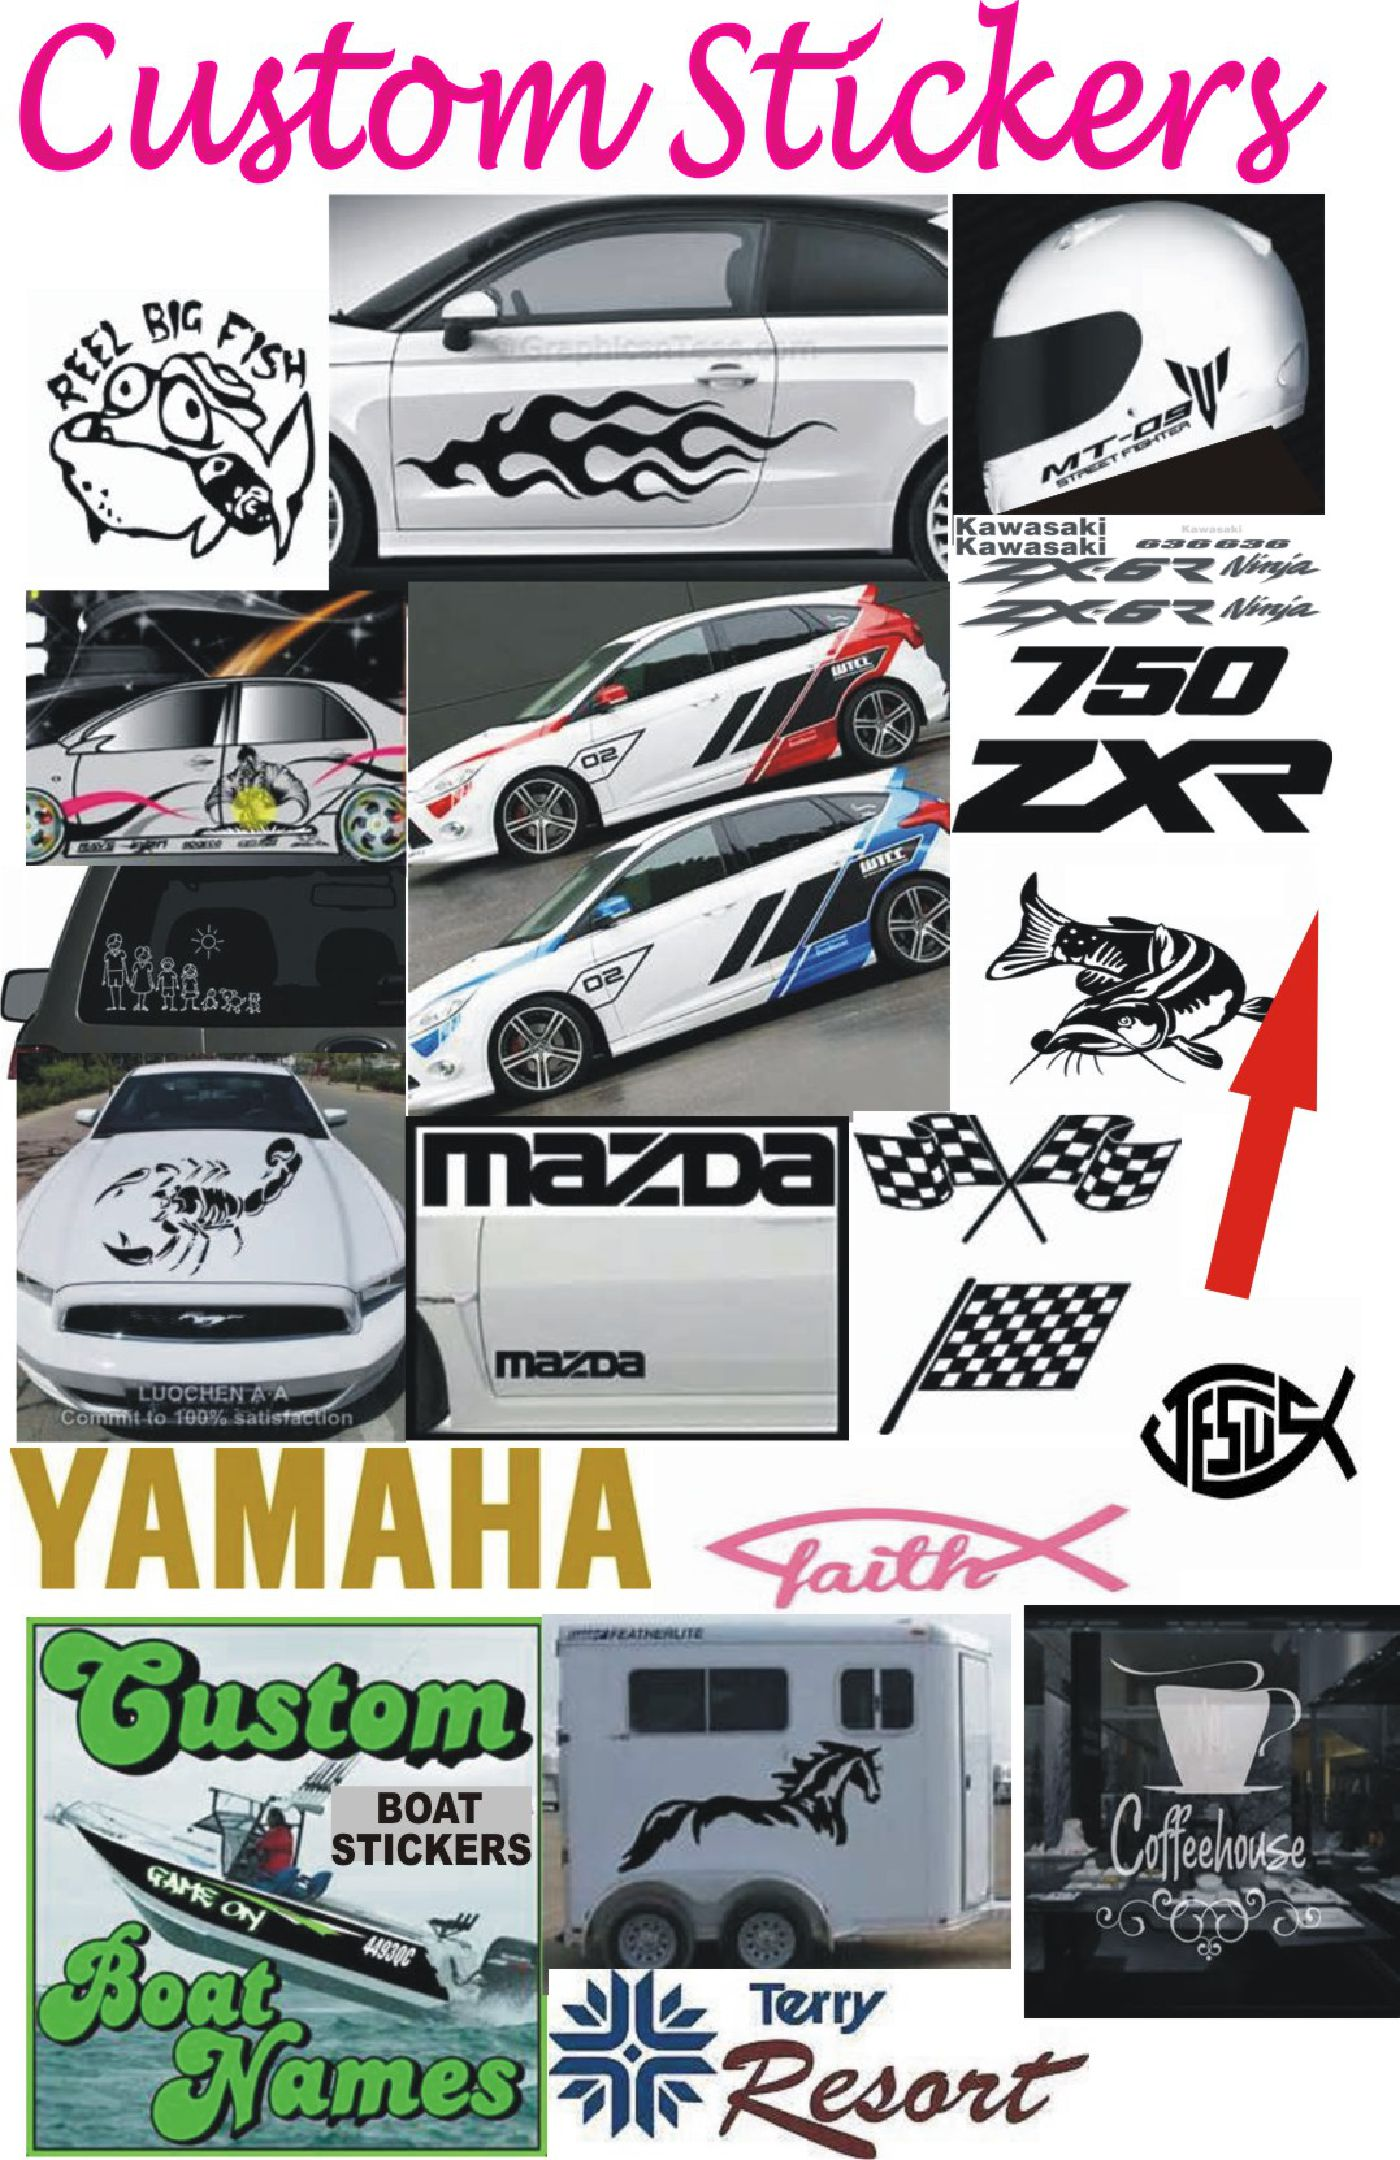 Custom stickers 1400x2160 jpg